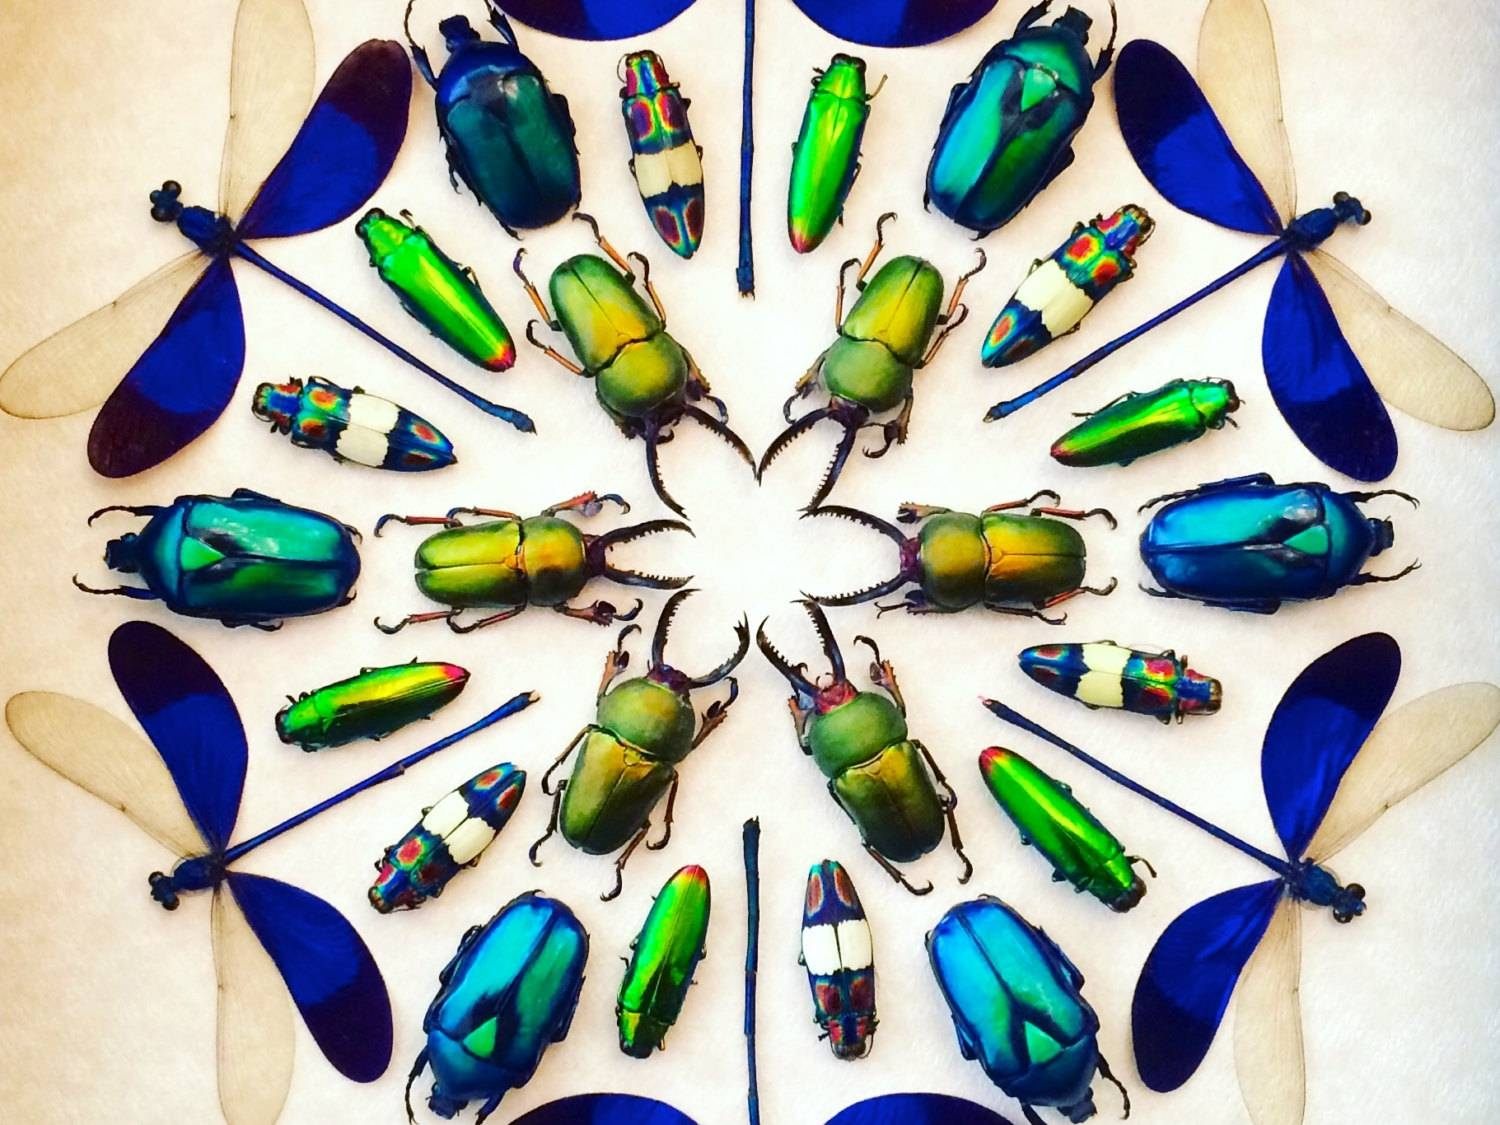 Framed Insect Display Kaleidoscope Real Bugs Framed Beetle Art Intended For Best And Newest Insect Wall Art (View 11 of 30)